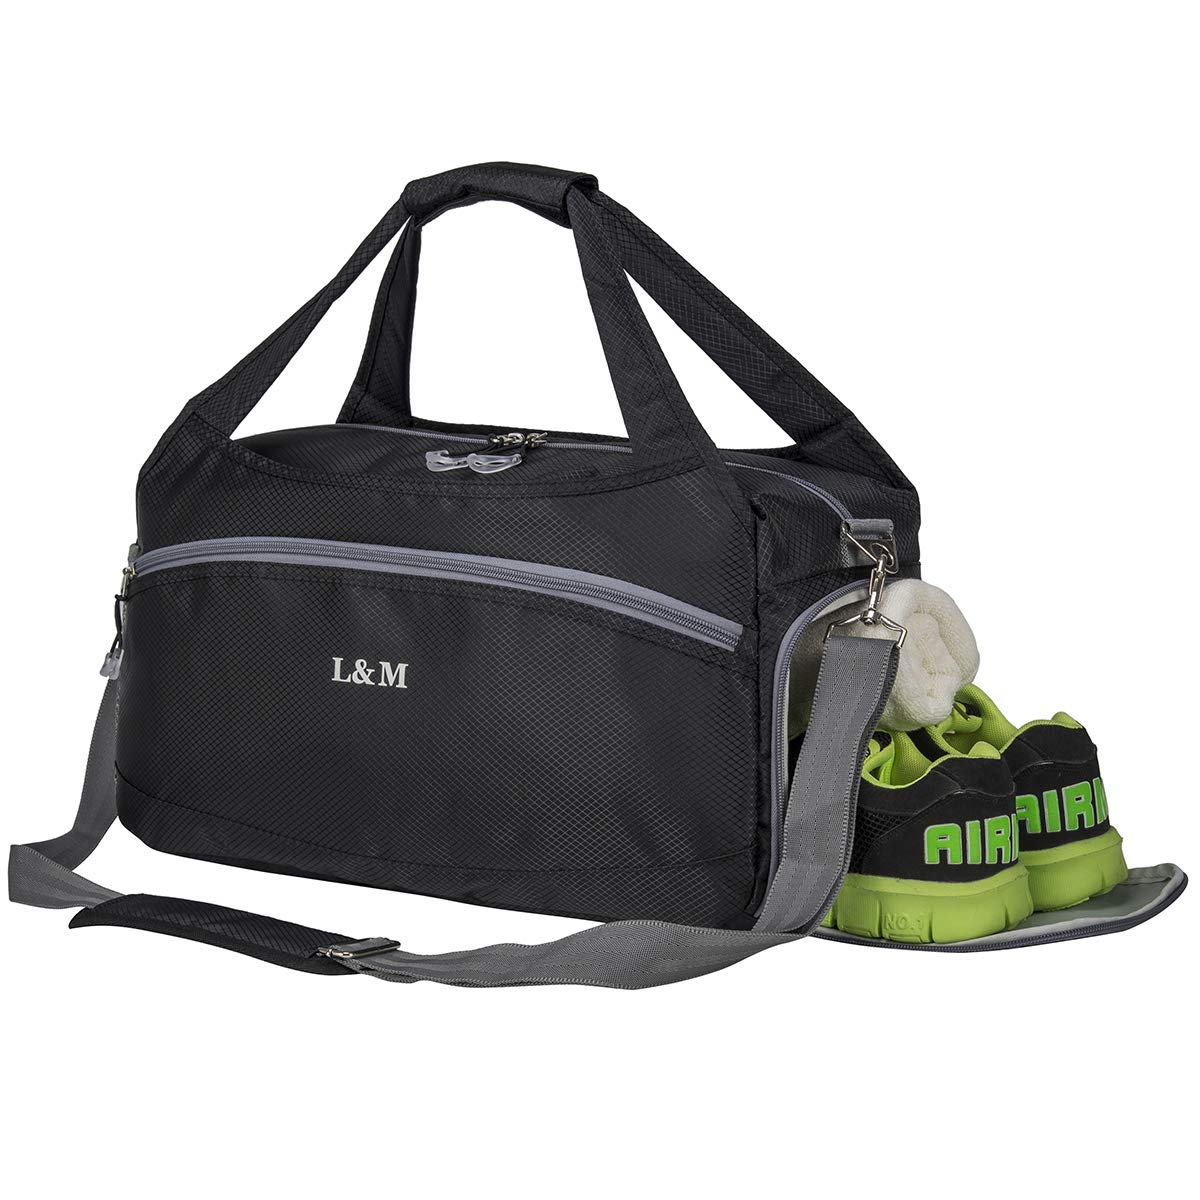 Kuston Small Sports Gym Bag Duffel bag mini travel duffel with shoe compartment for Men/&Women